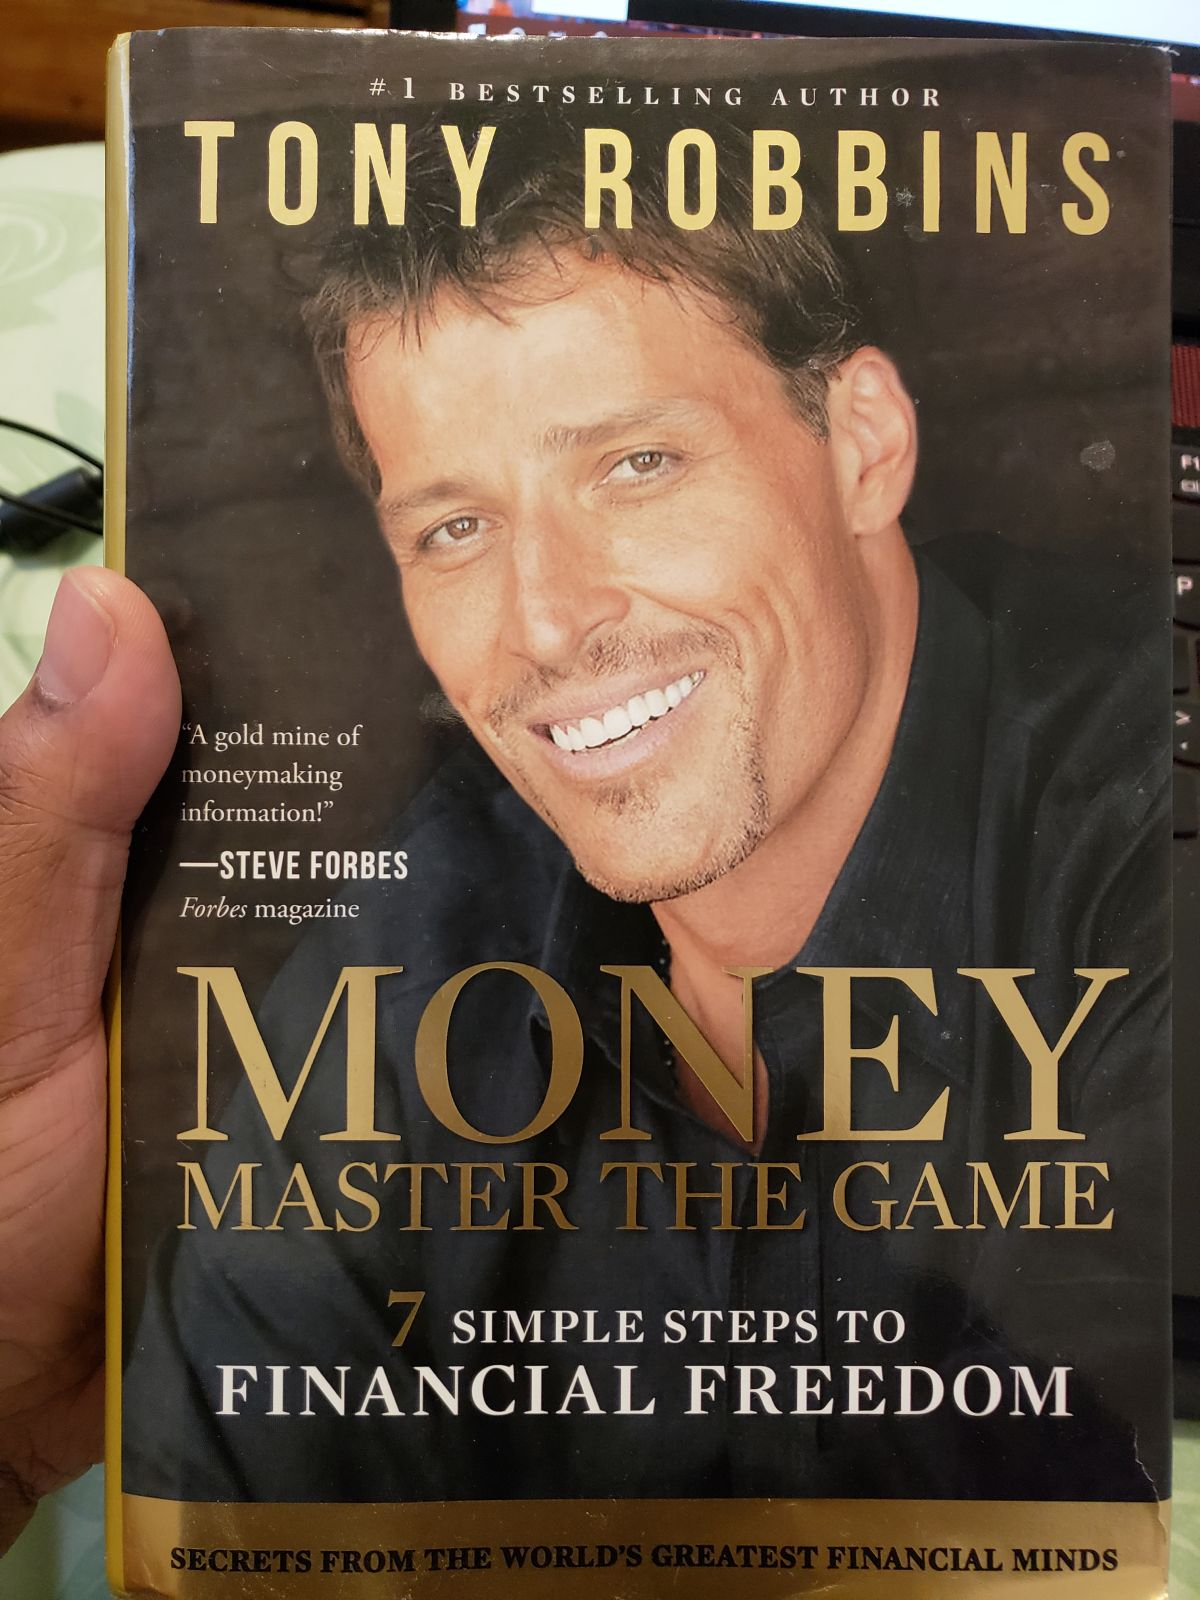 MONEY Master The Game by Tony Robbins. 7 Simple Steps To Financial Freedom